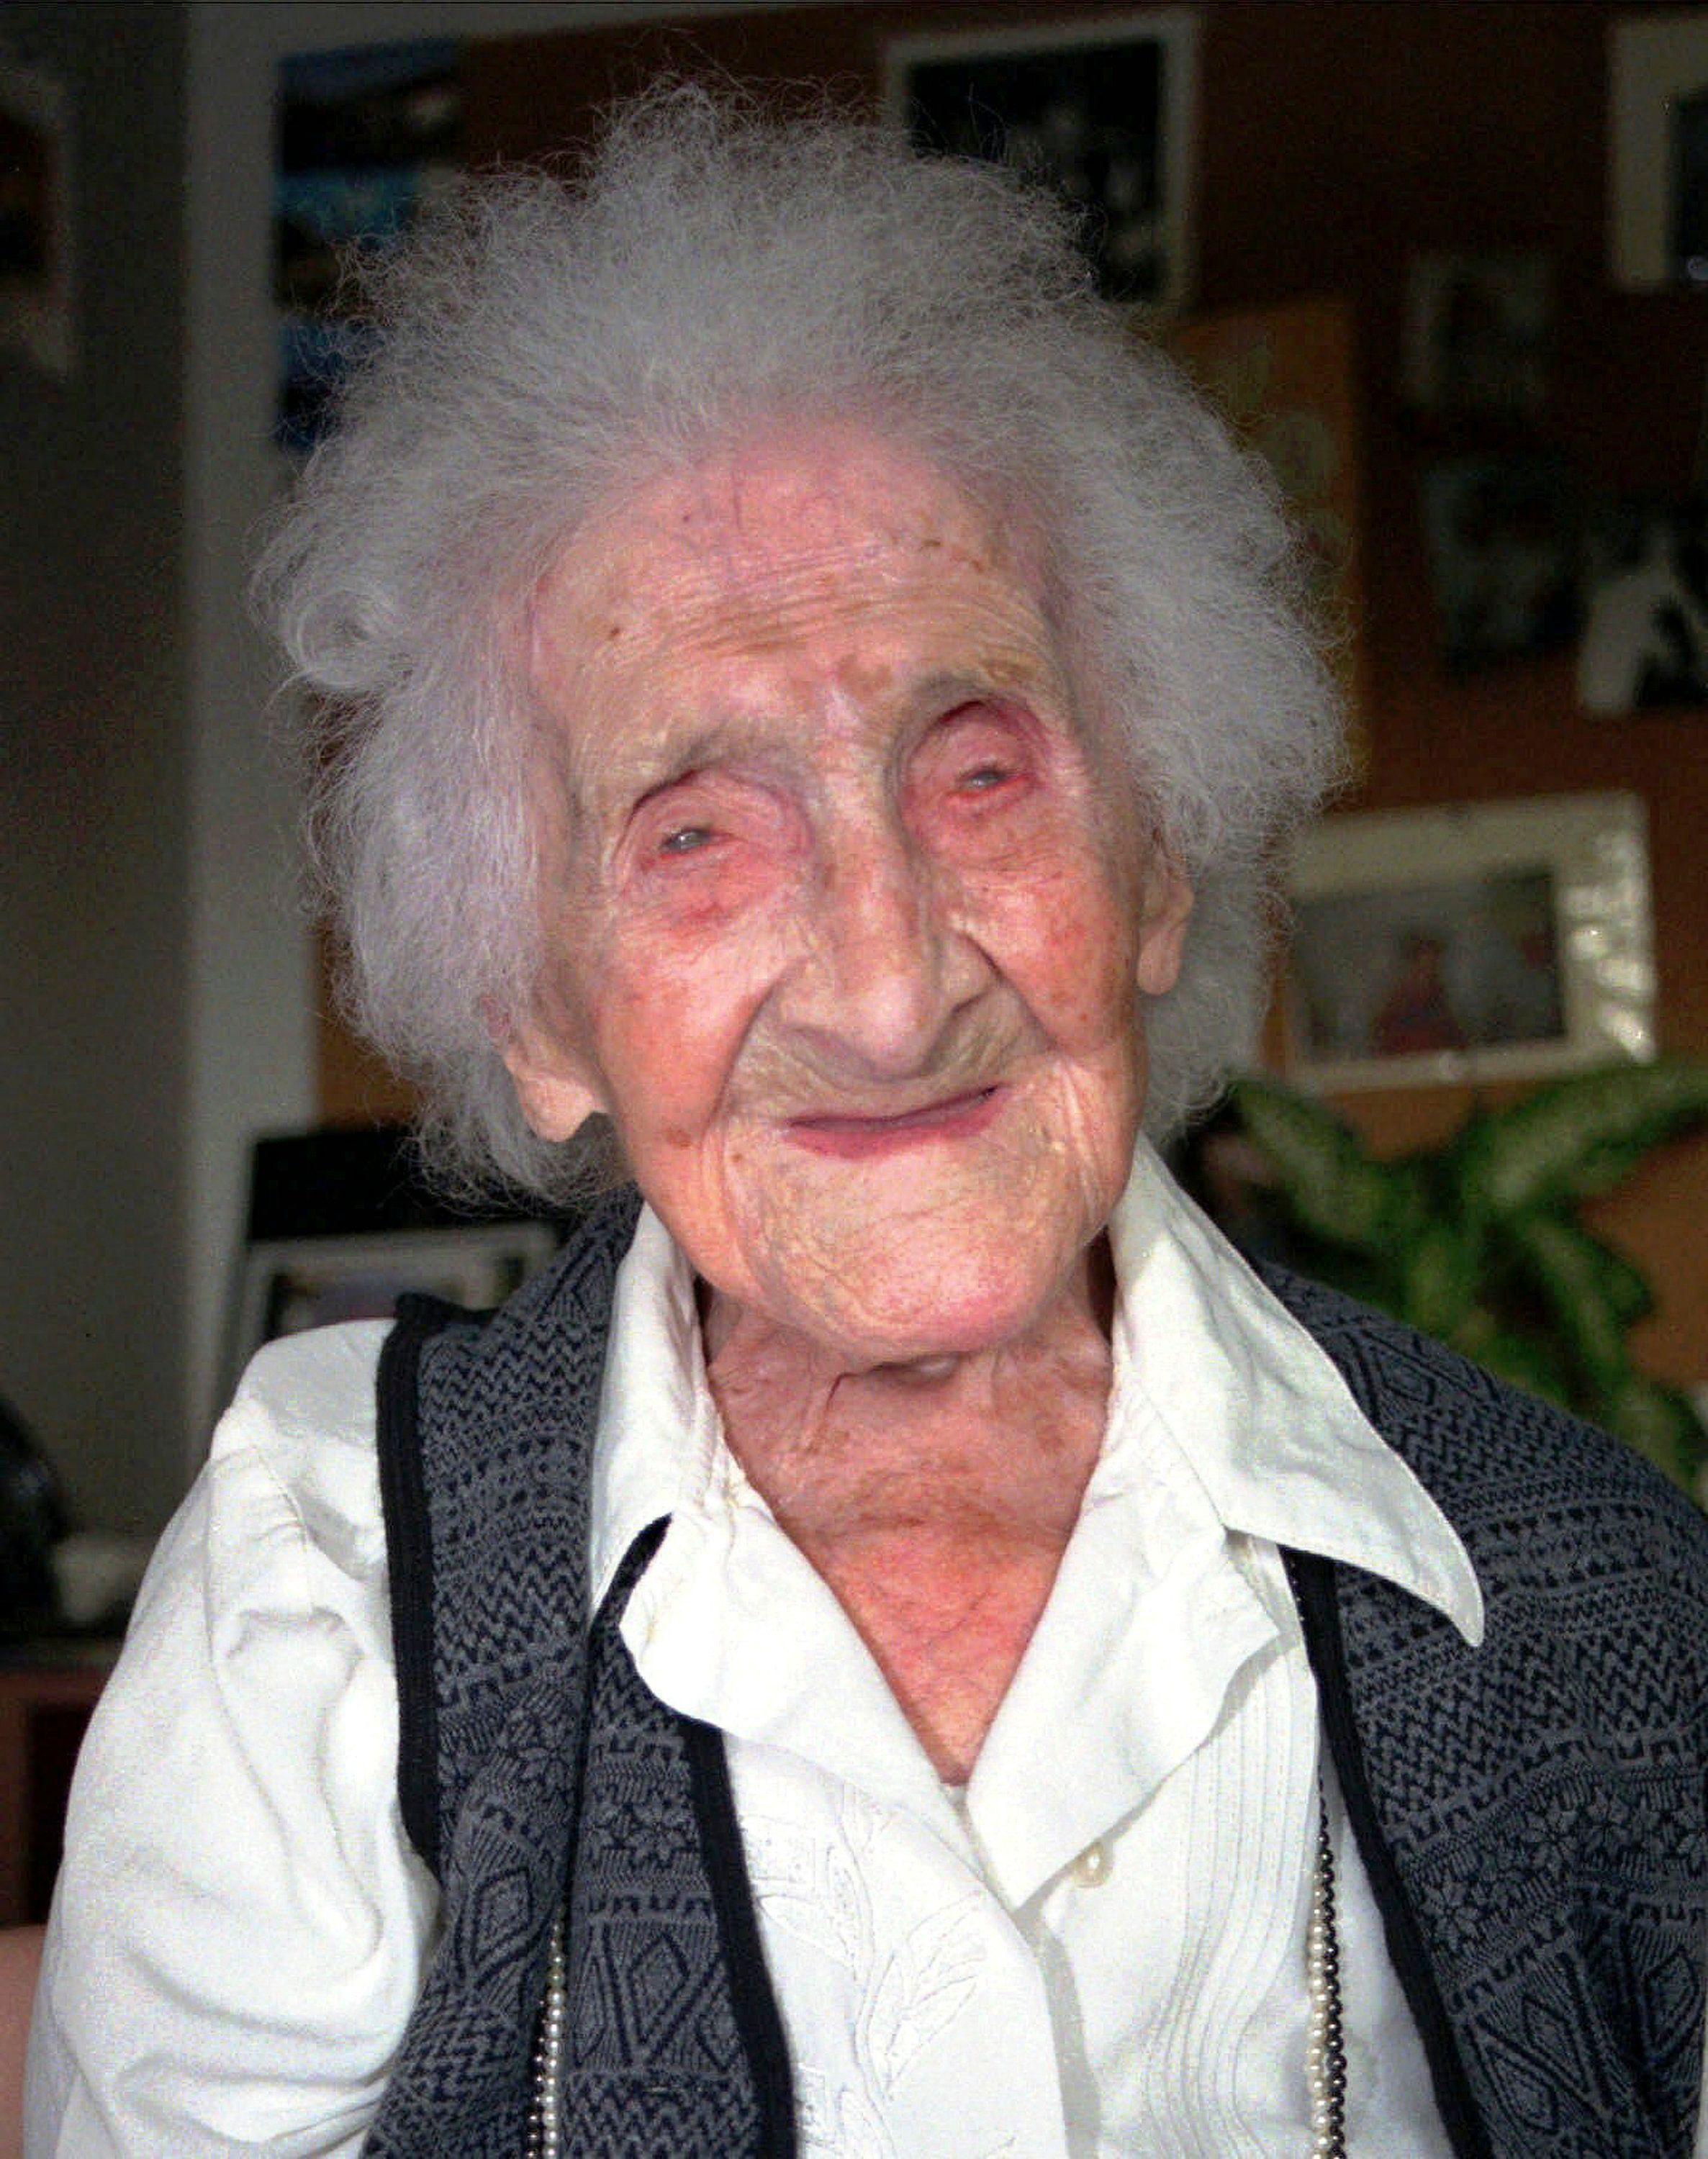 World's Oldest Person, Jeanne Calment, May Have Faked Her Age: